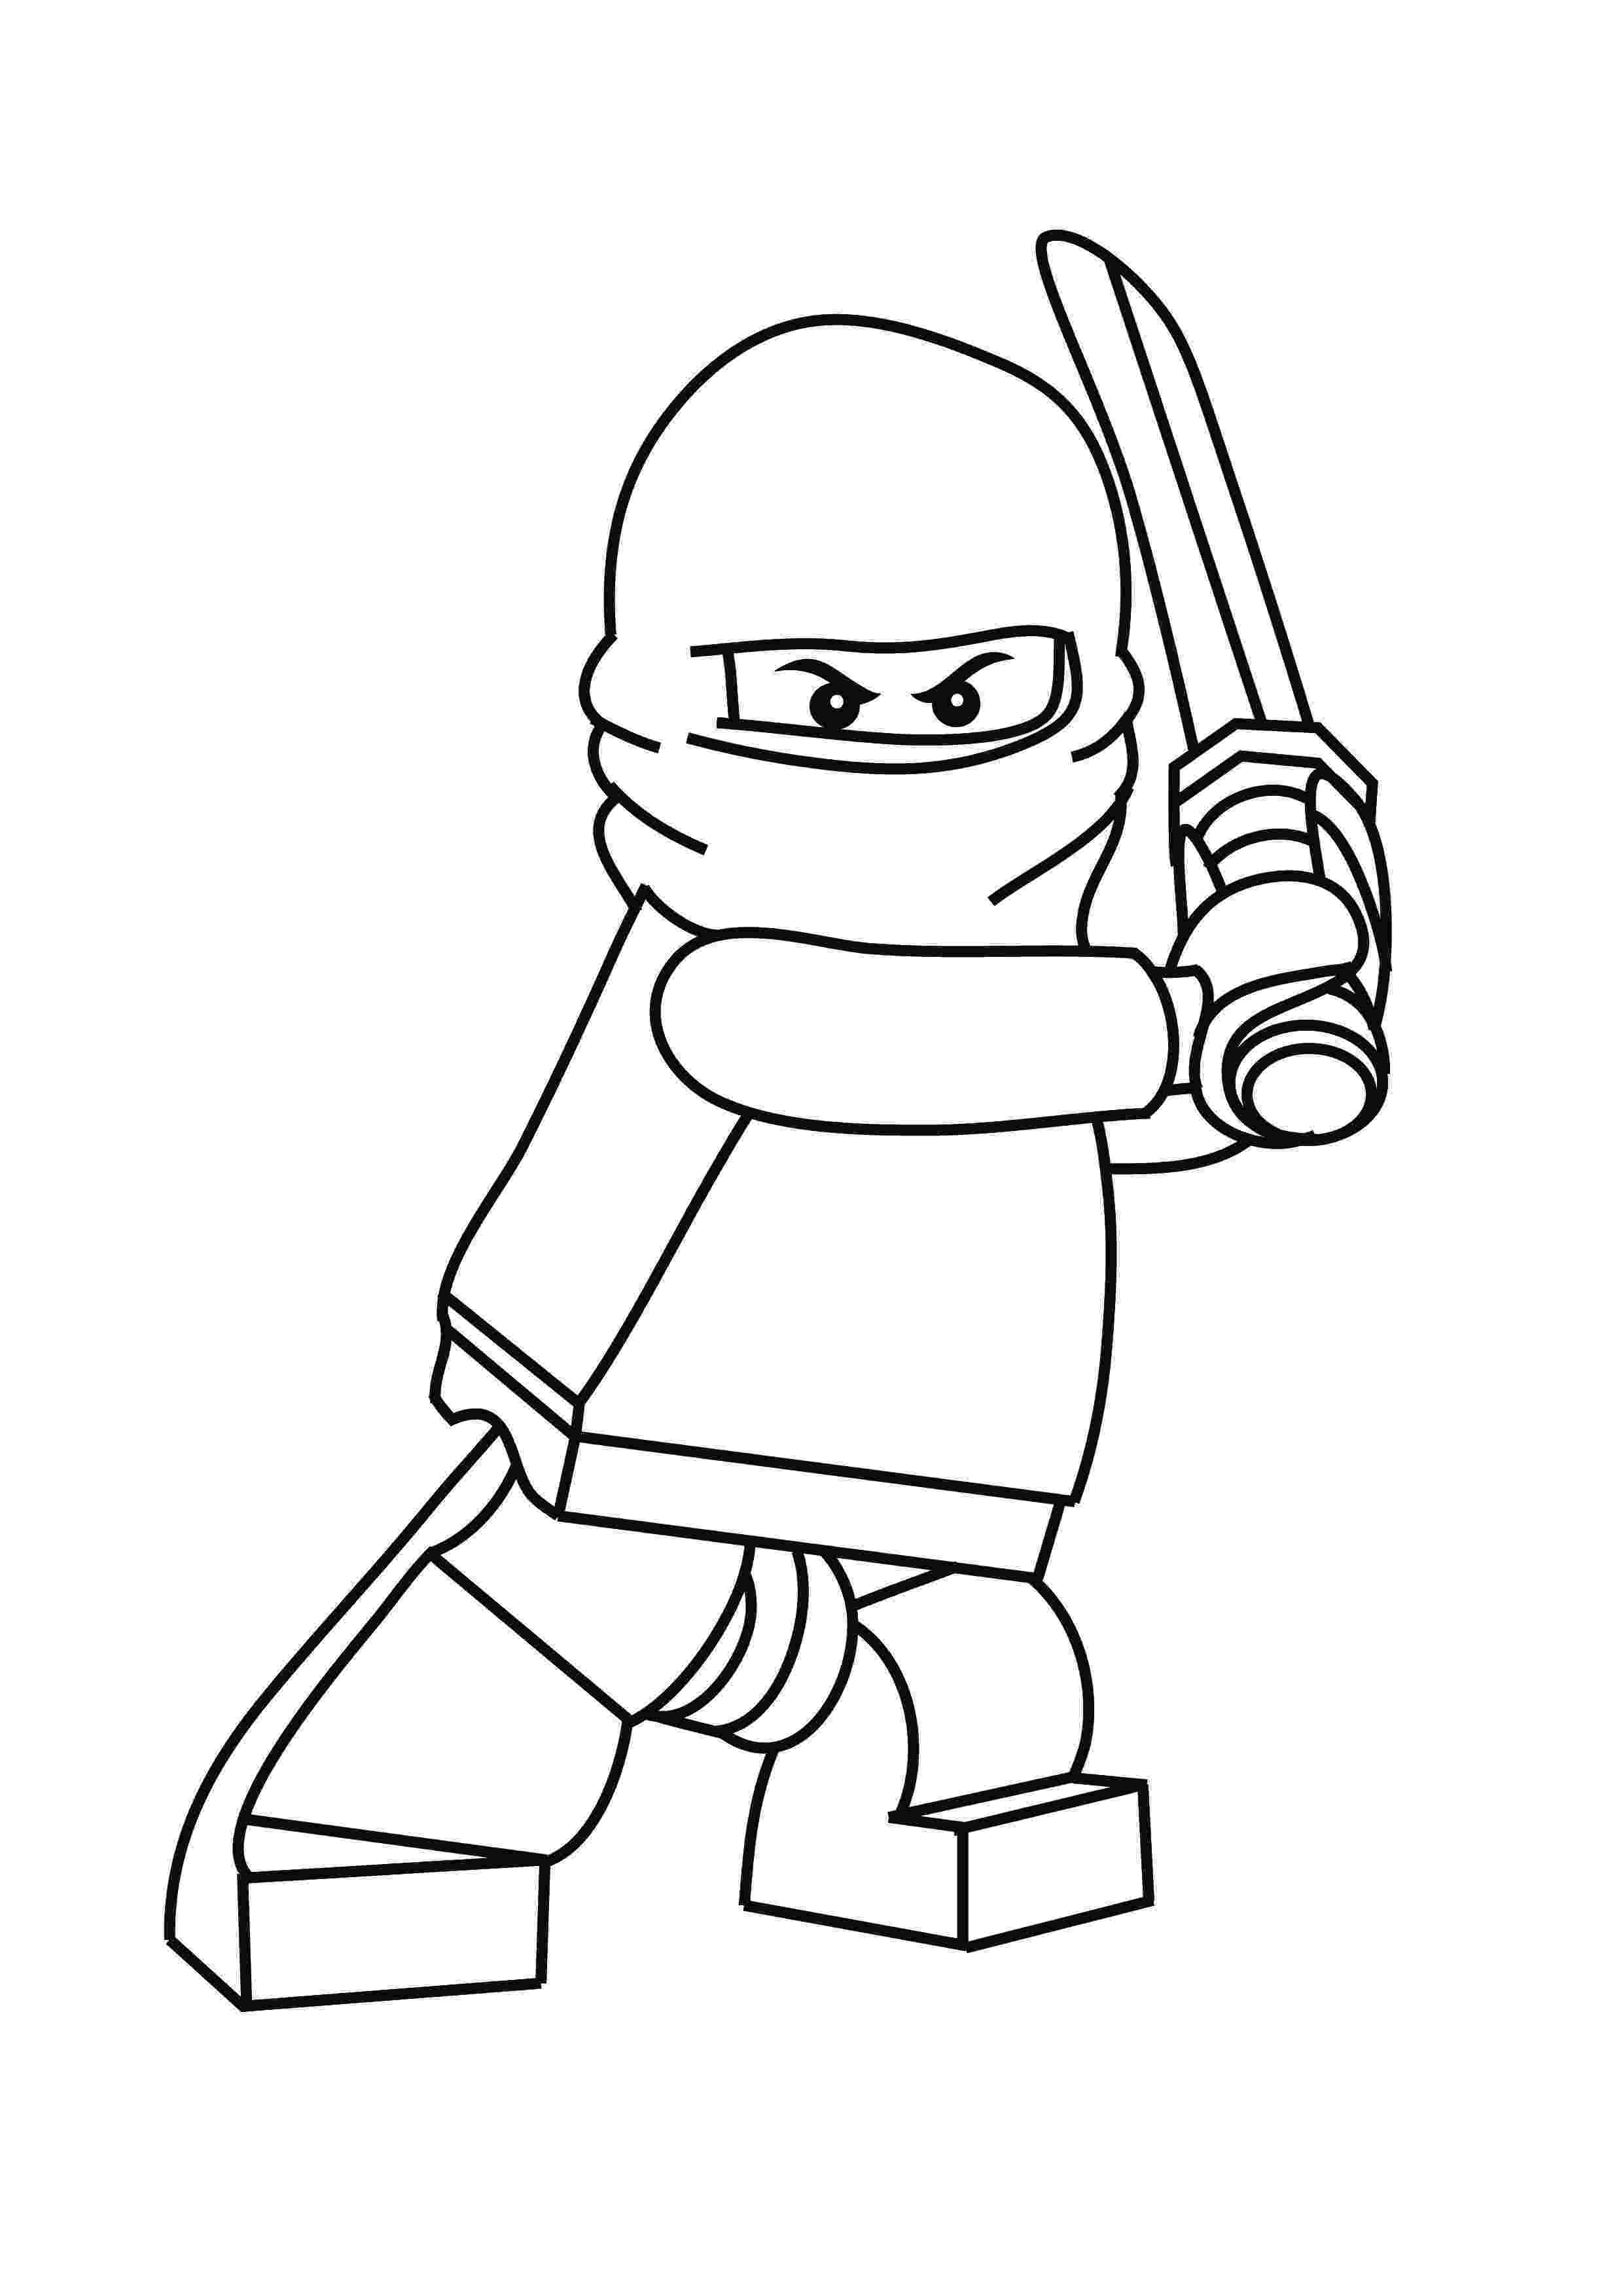 free lego printable coloring book the lego movie coloring page lego wyldstyle emmet free book coloring printable lego